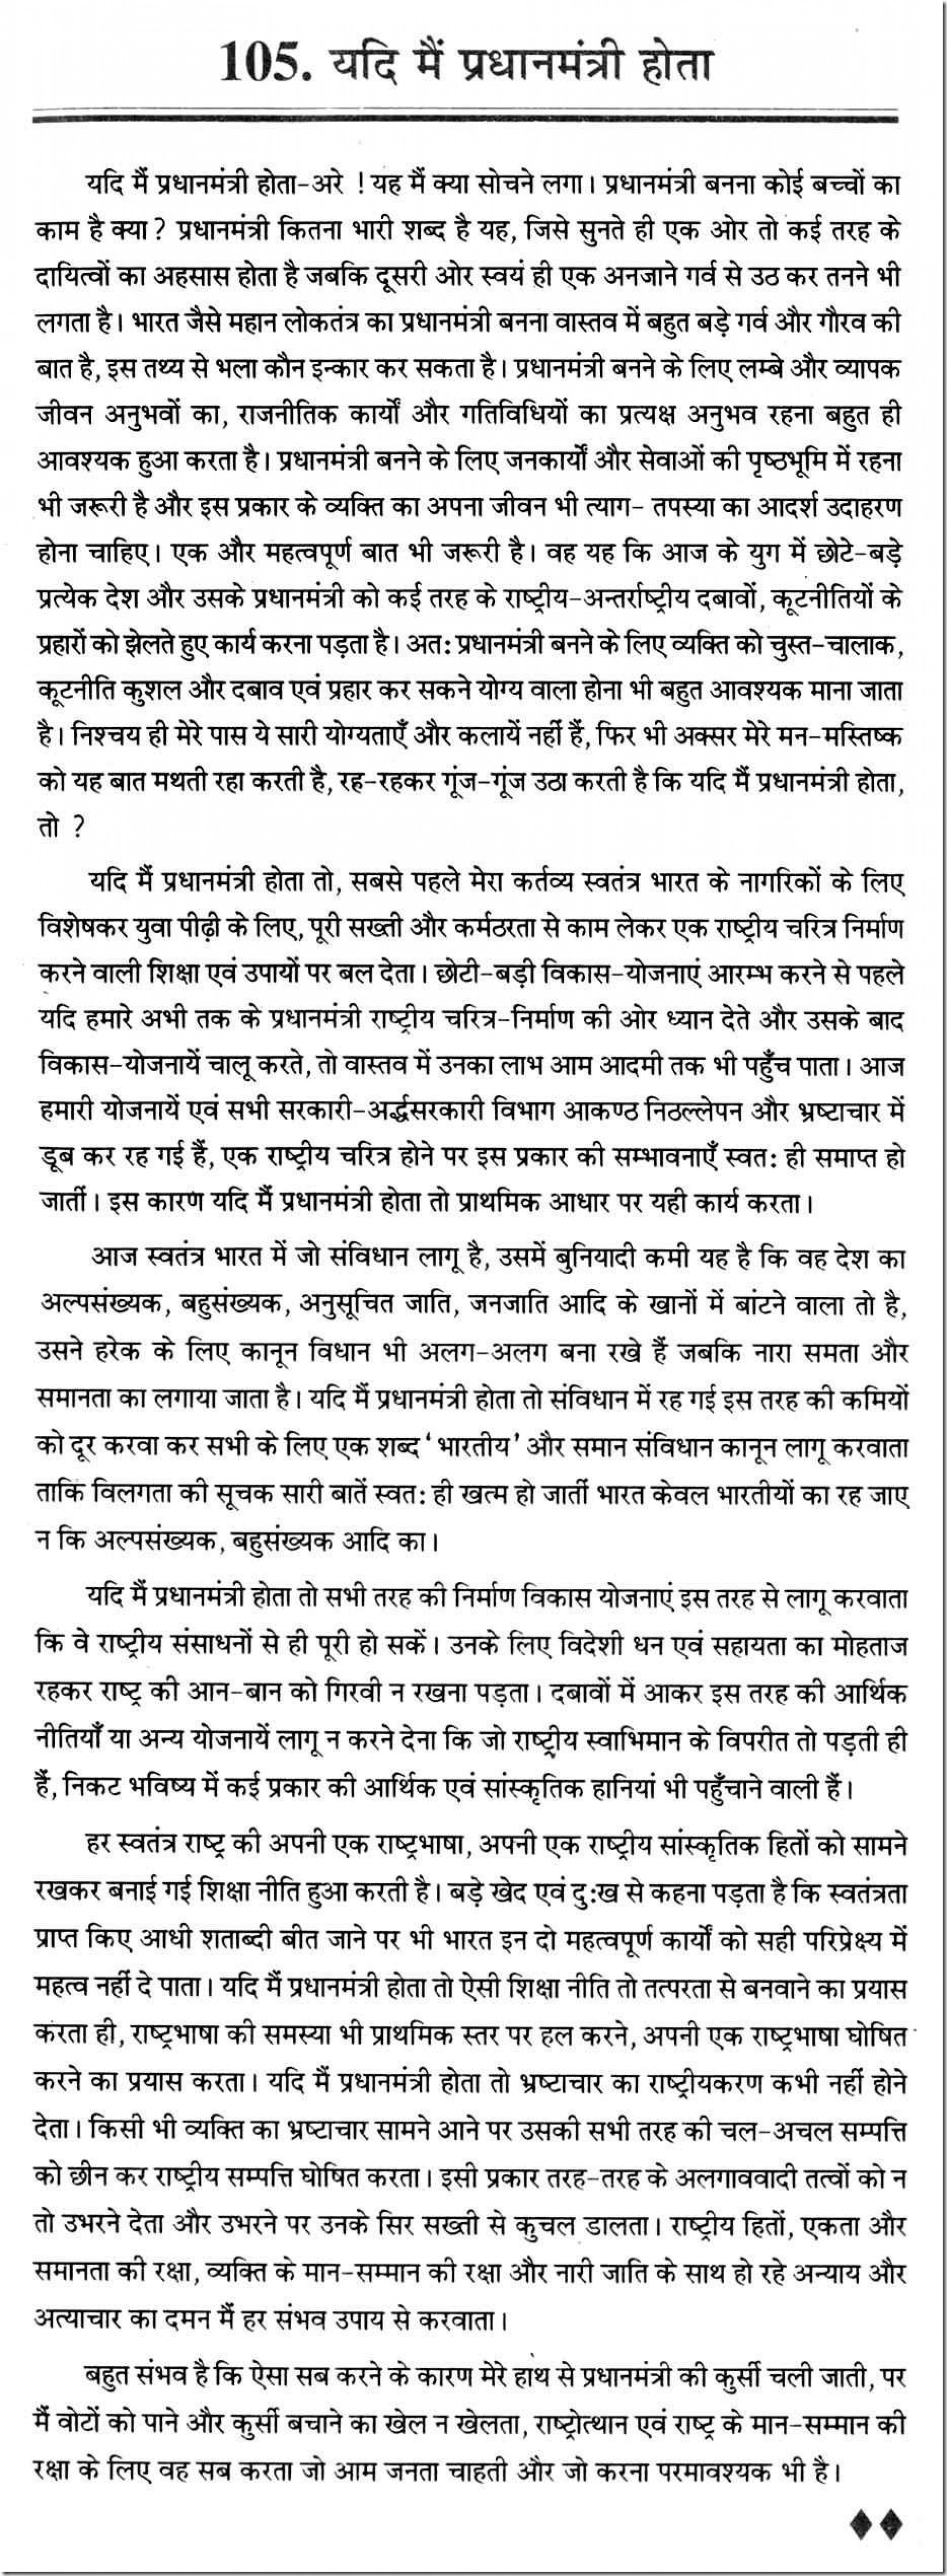 010 Prime Minister Essay Term Paper Writing Service Cmcourseworkhwja Writings Reviews 10106 Outstanding On Narendra Modi In Marathi First Of India Hindi 1920